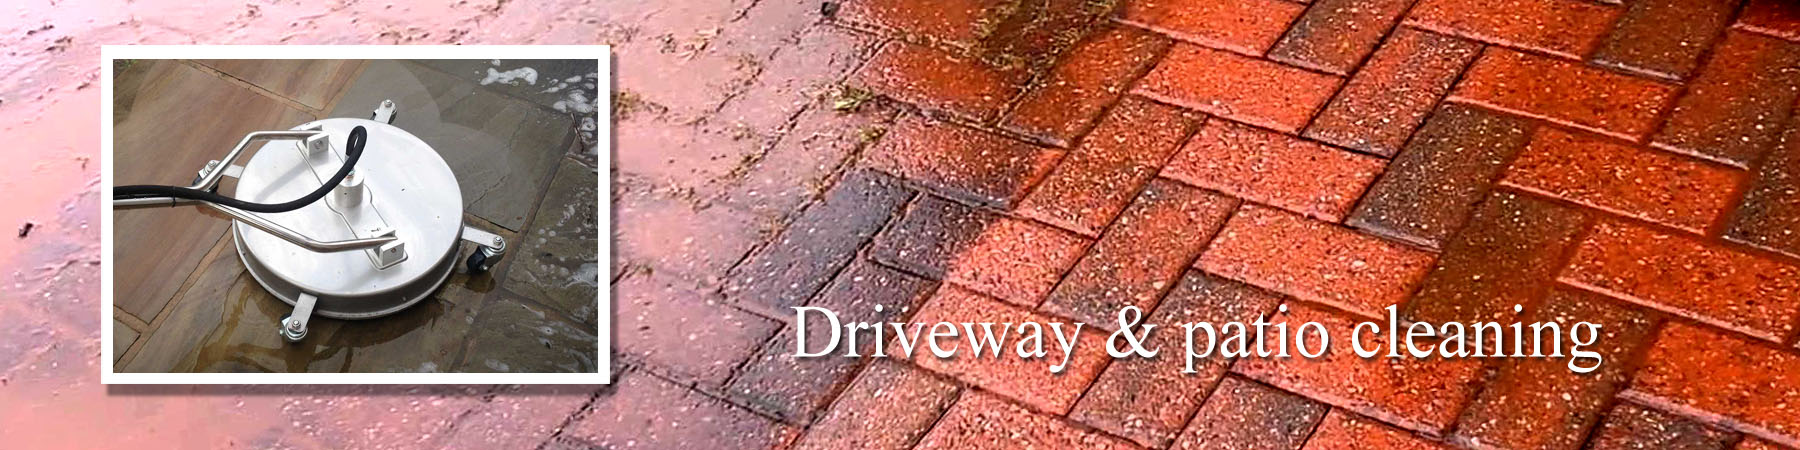 Driveway & Patio Cleaning Margate J R Cleaning